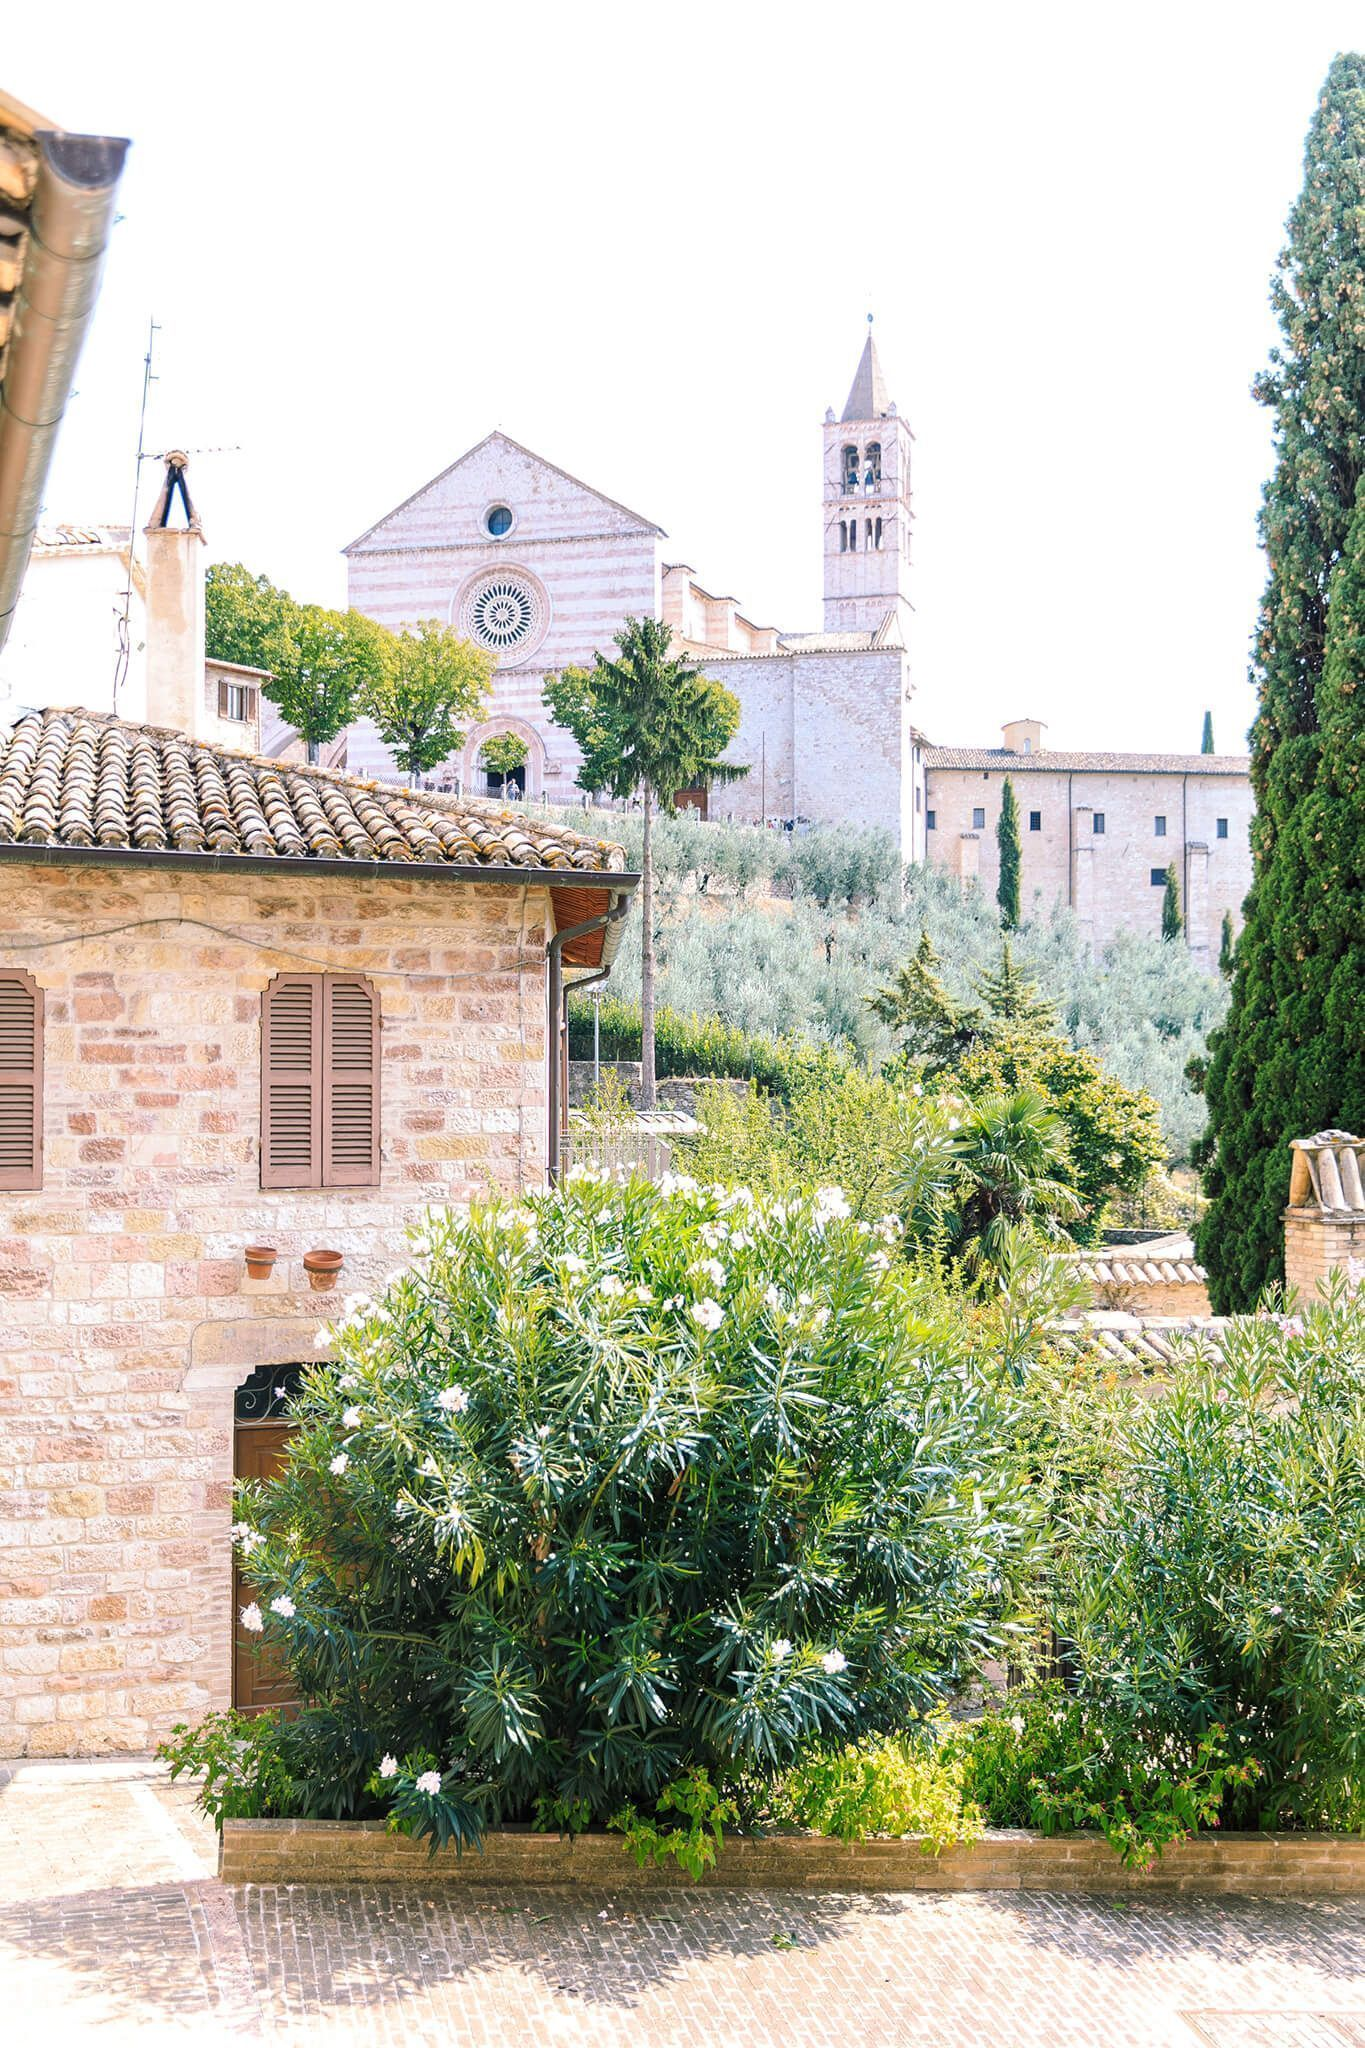 Hochzeit in Italien - After Wedding Shooting in Assisi - Location